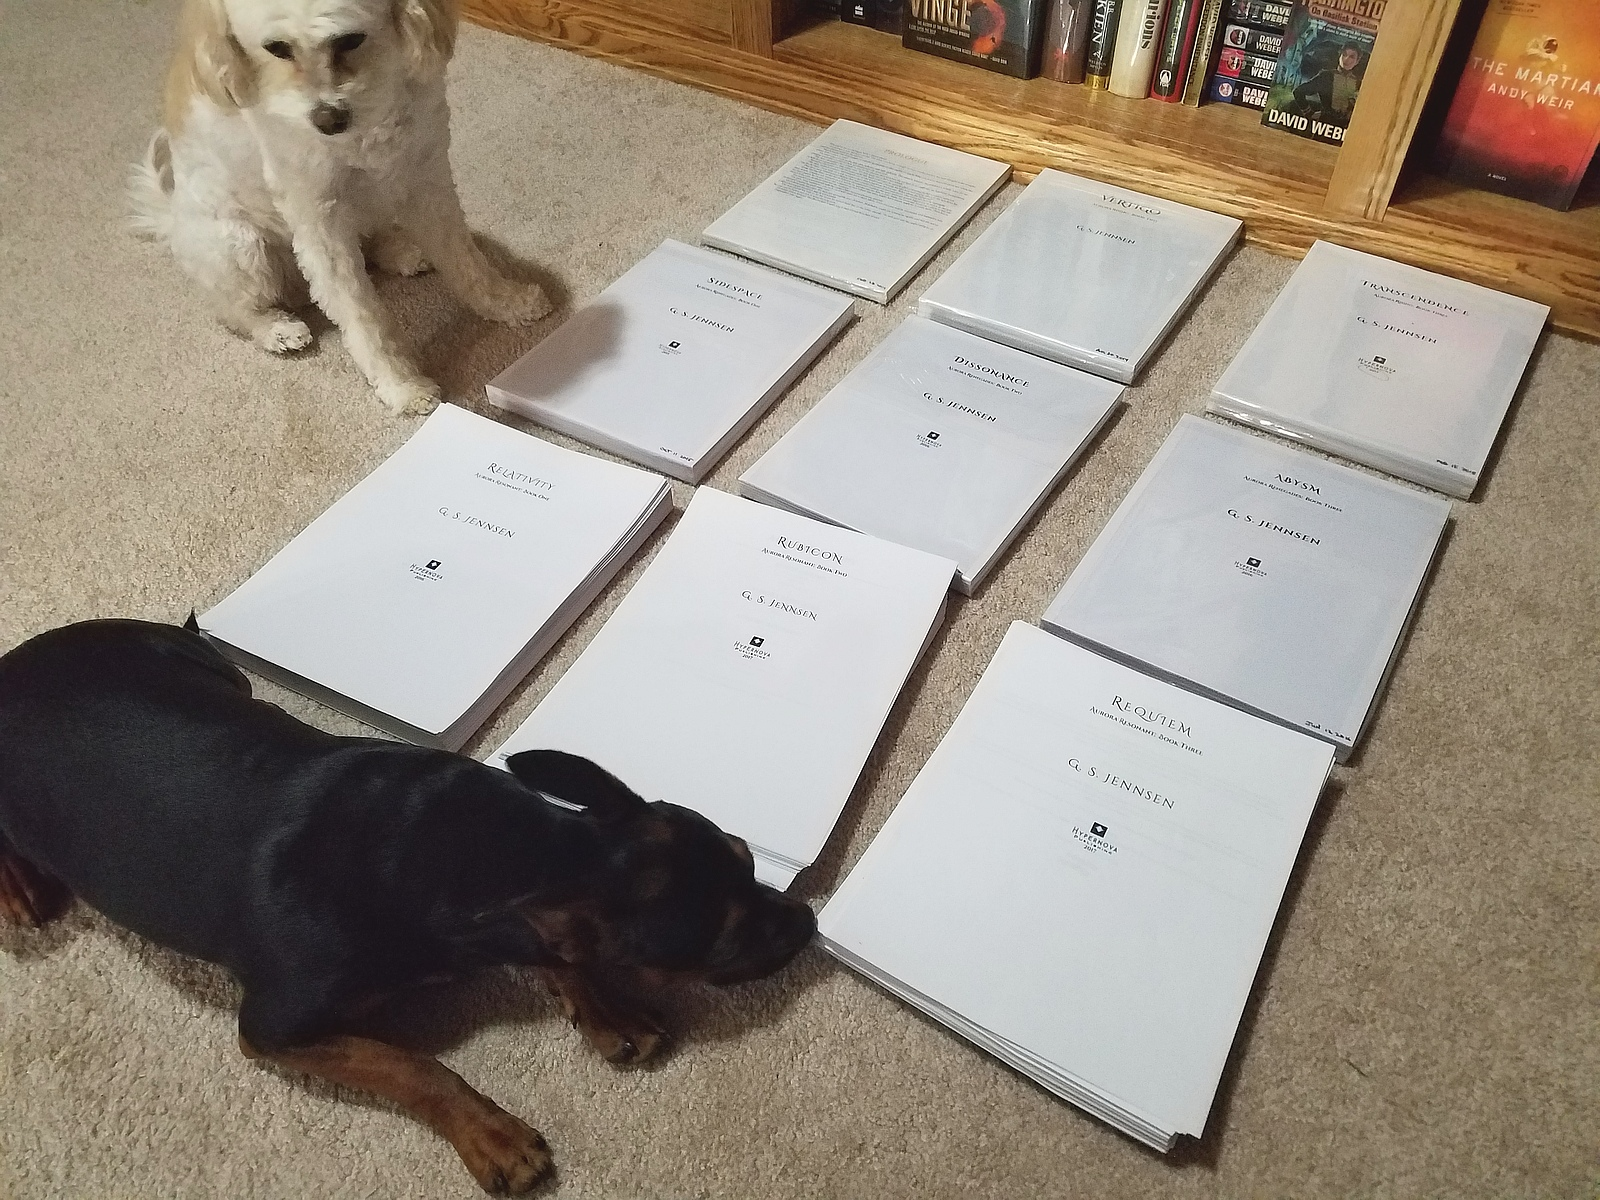 STARSHINE WAS PRINTED DOUBLE-SIDED BECAUSE I WAS DESPERATE TO SAVE MONEY. ALSO, THE PUPPERS REFUSED TO MOVE FOR THE PICTURE ;).